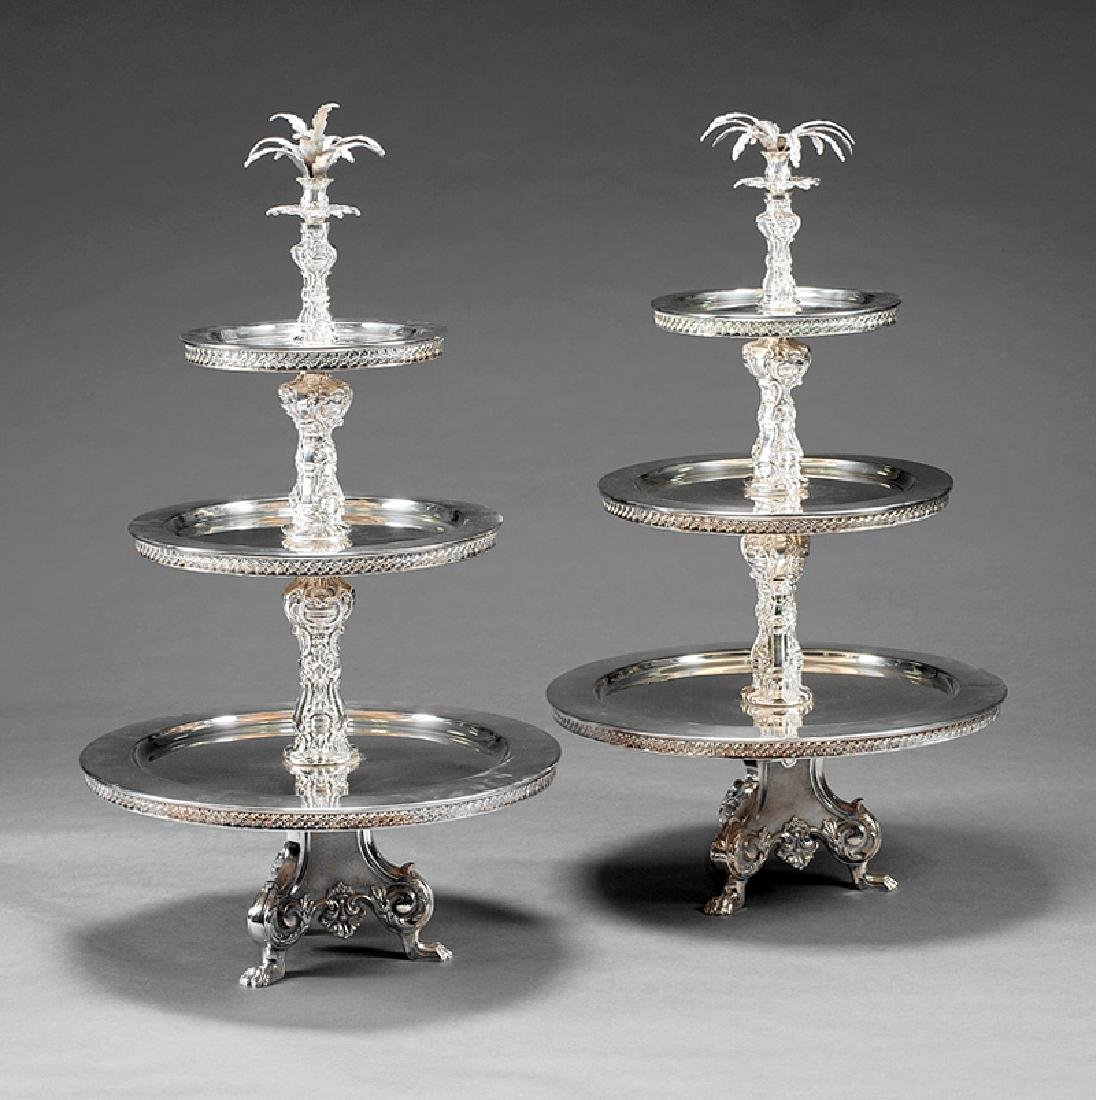 Pair of Silverplate Three-Tier Dessert Stands